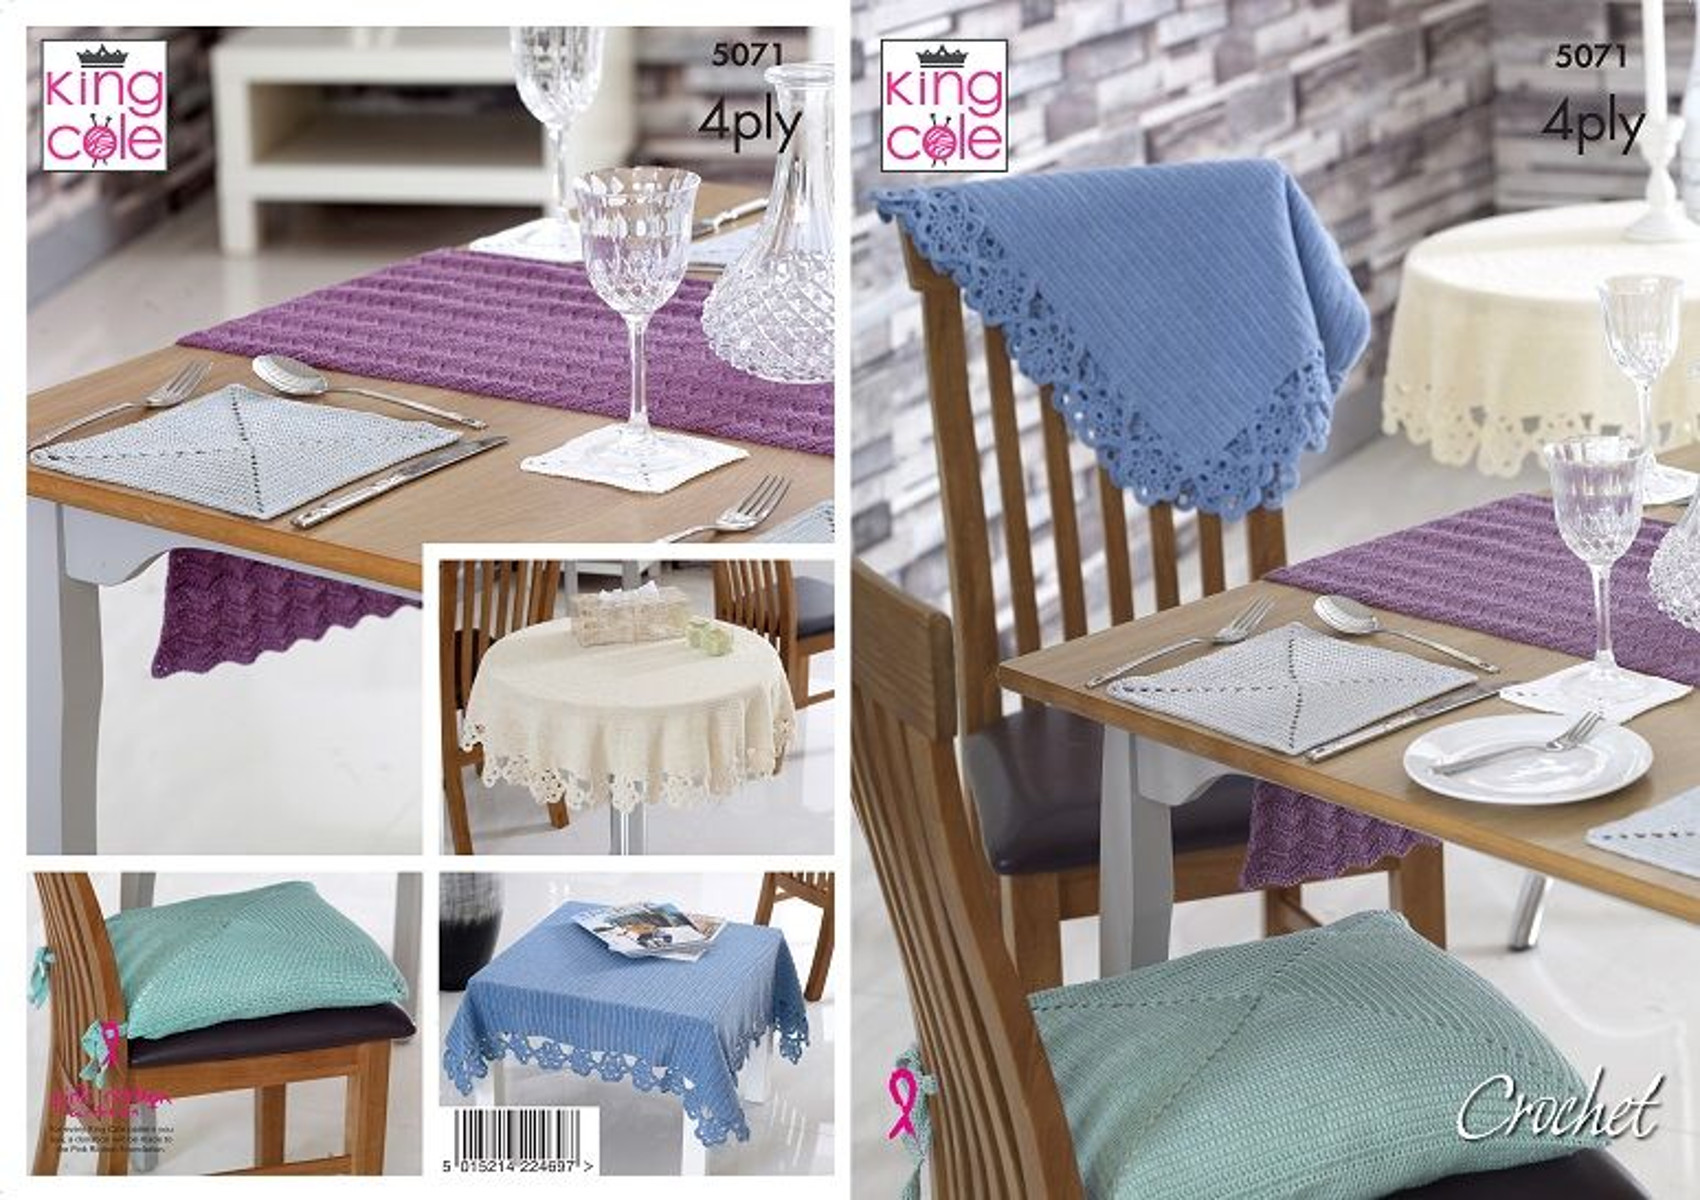 Table Linen 4 Ply Crochet Pattern Tablecloth Mat Runner Seat Pads King Cole 5071